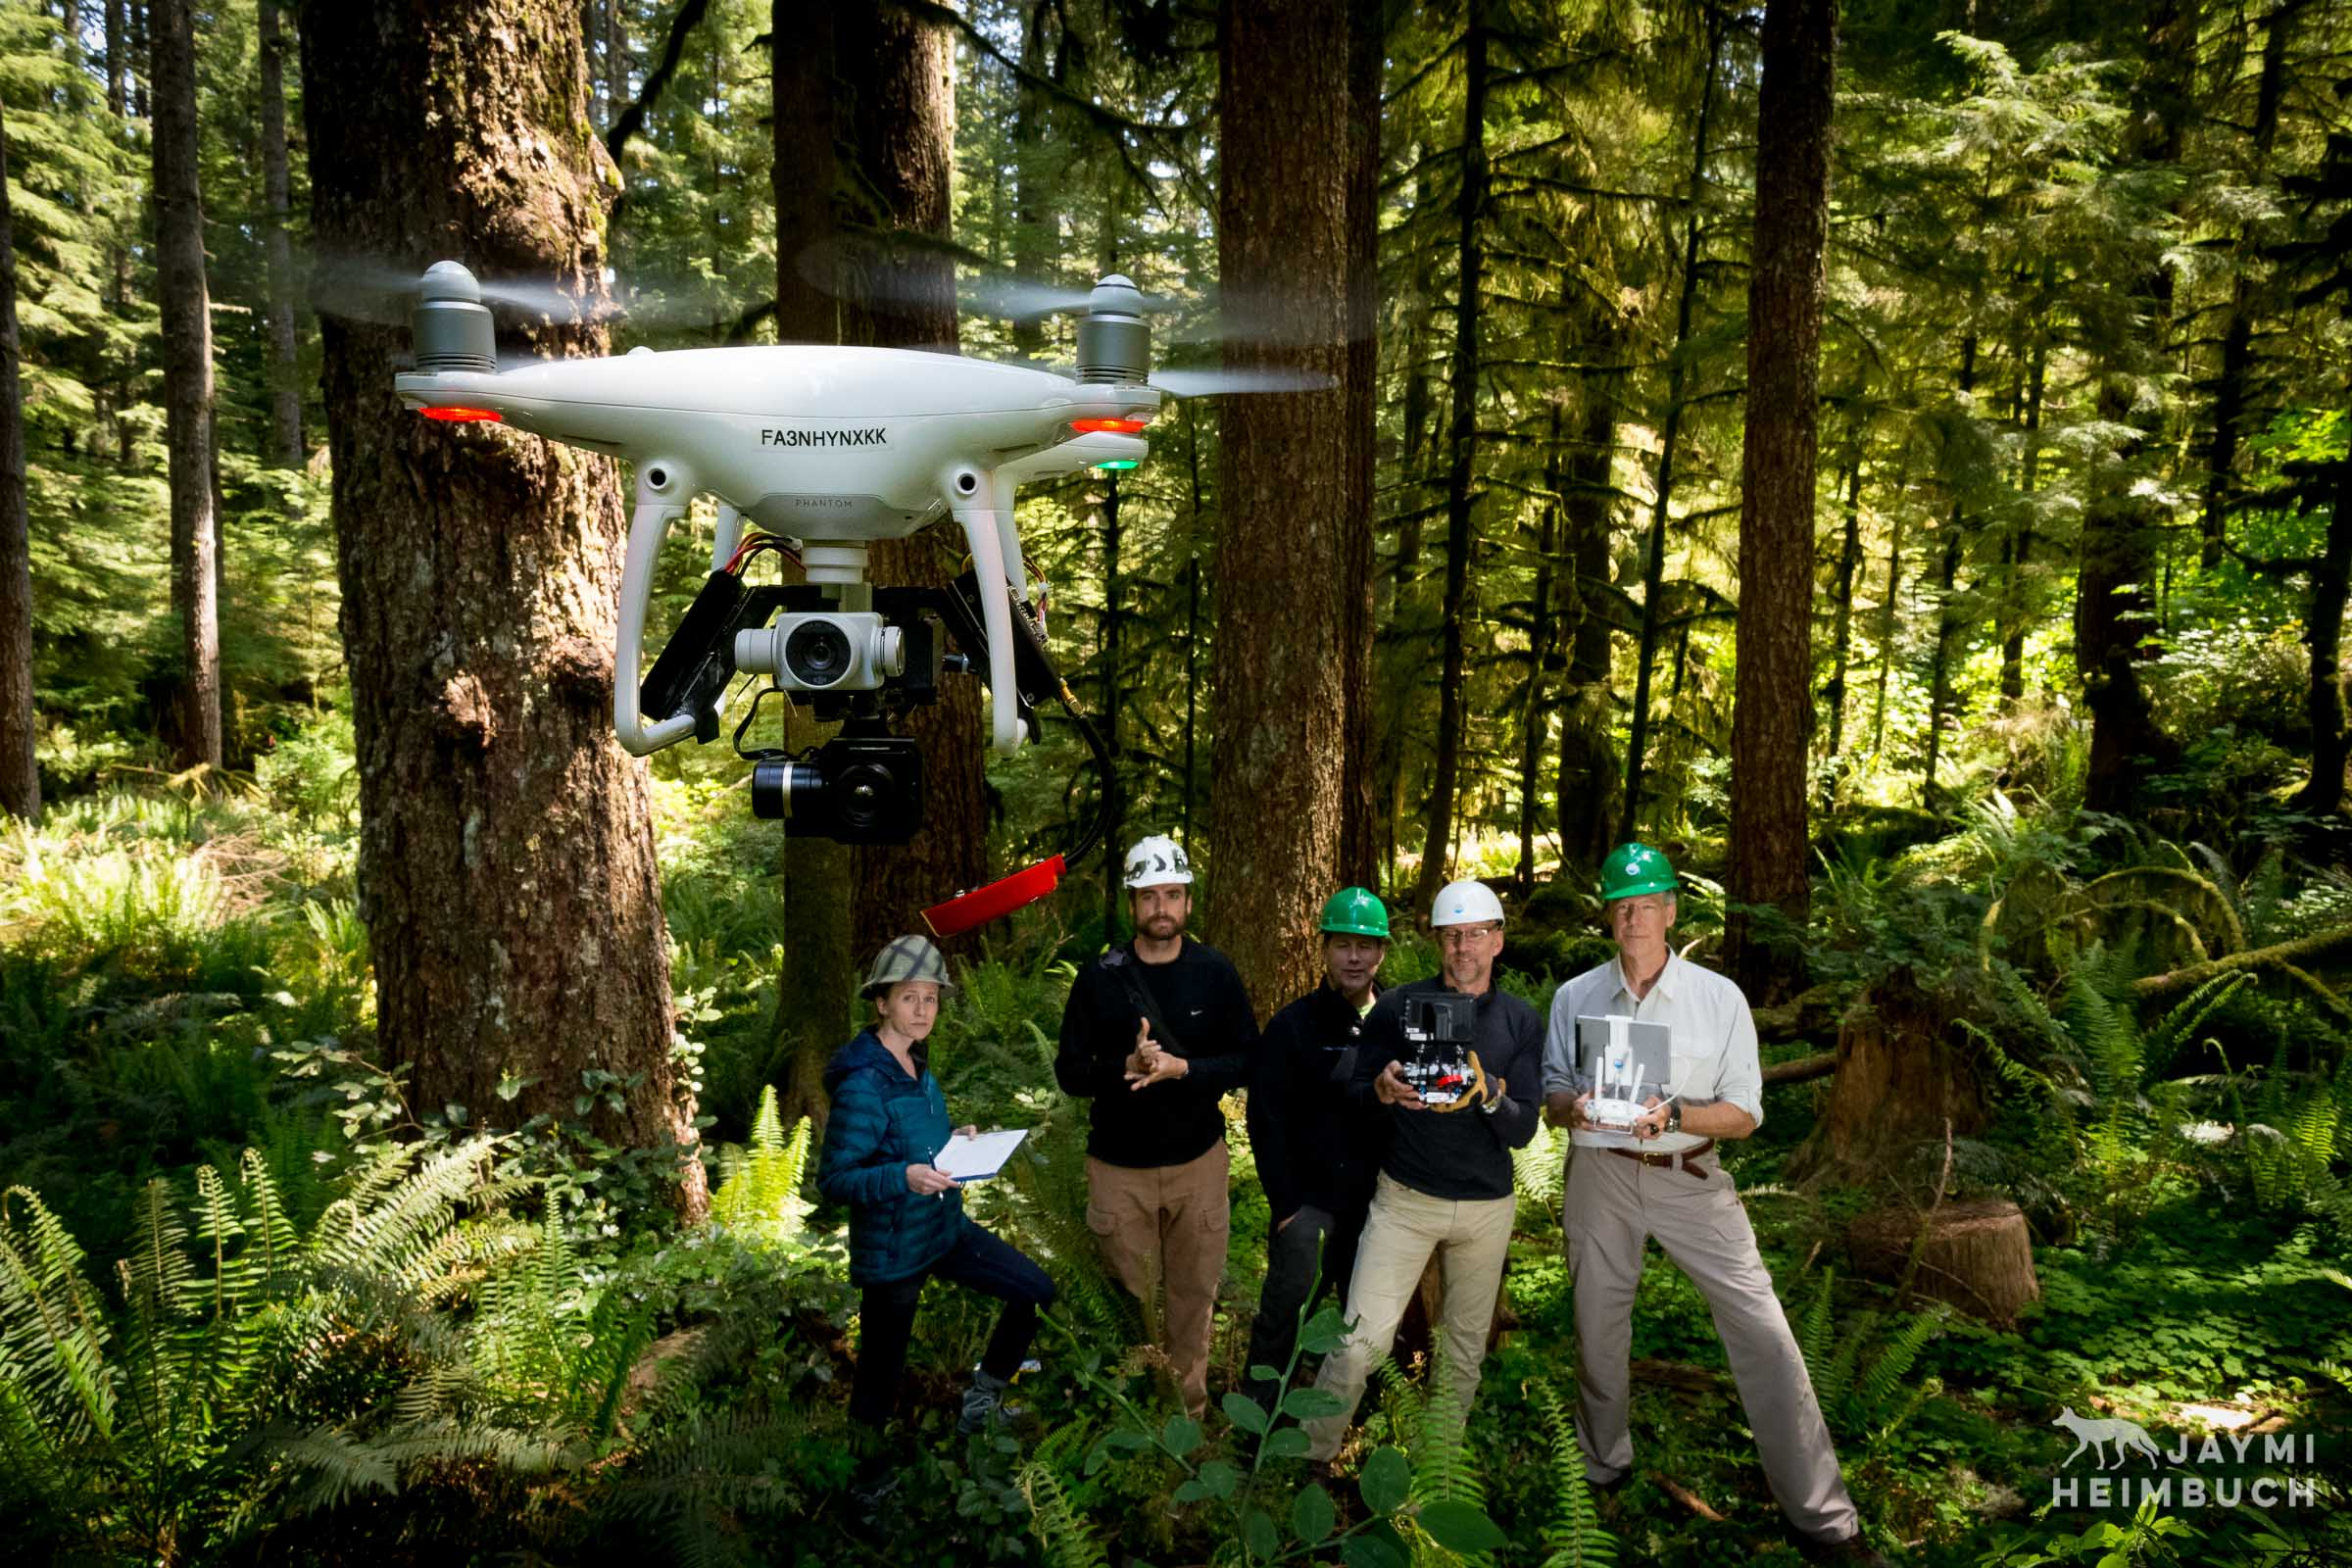 Oregon State University research team partners with Oceans Unmanned team to use drones and infrared camera technology to locate endangered marbled murrelet nests for a study. Newport, Oregon.